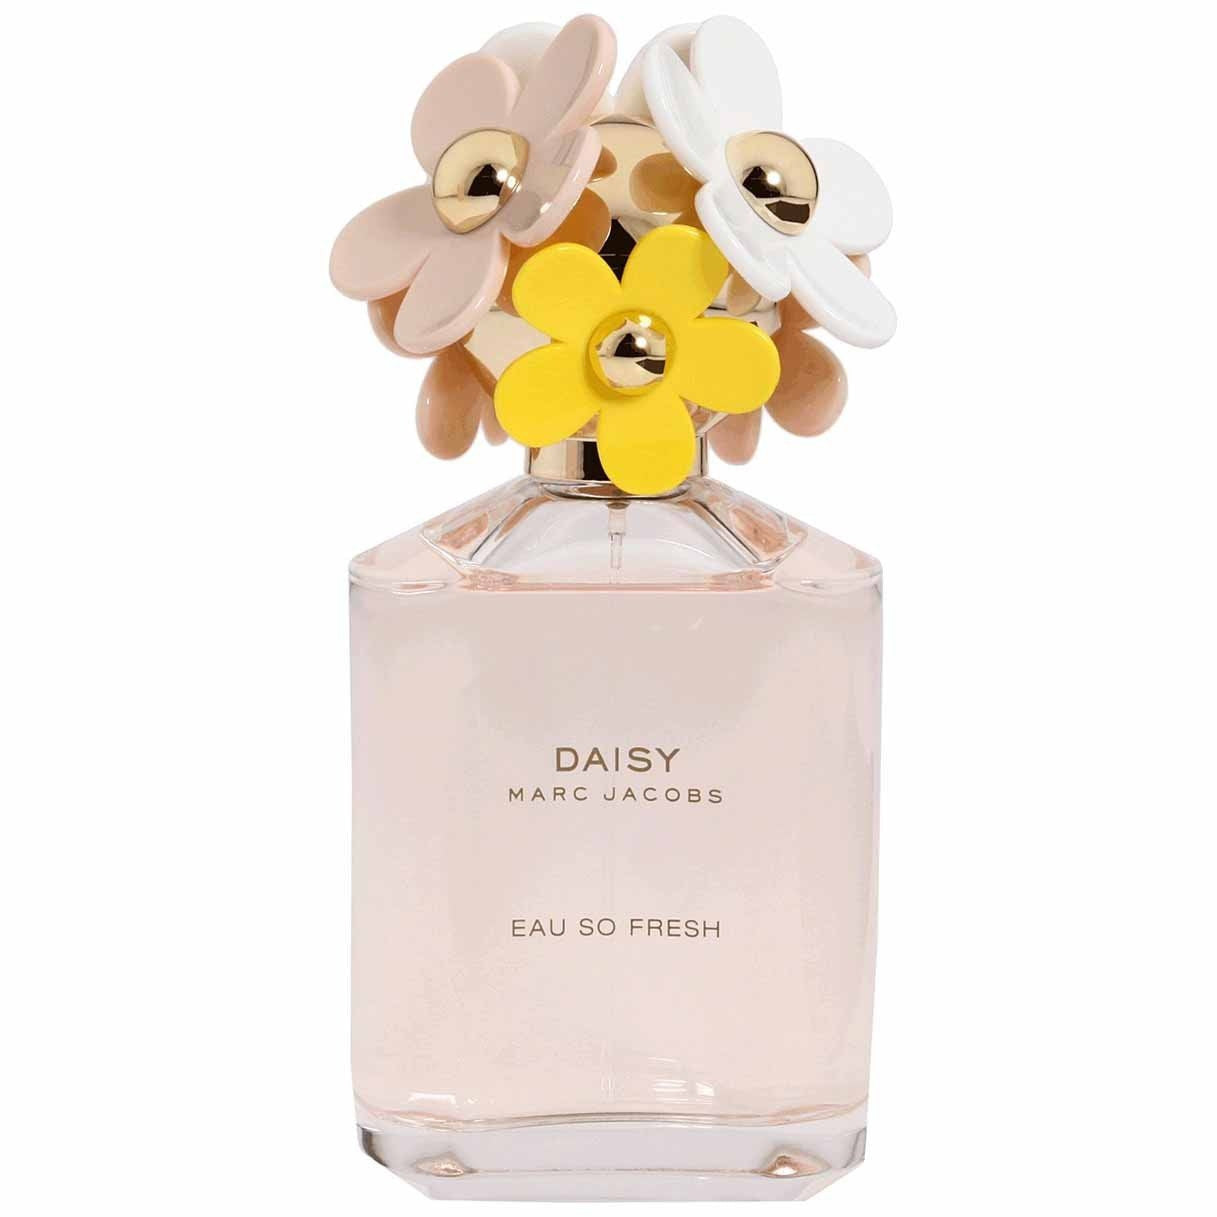 daisy-eau-so-fresh-by-marc-jacobs-perfume-4-2-oz-edt-new-tester